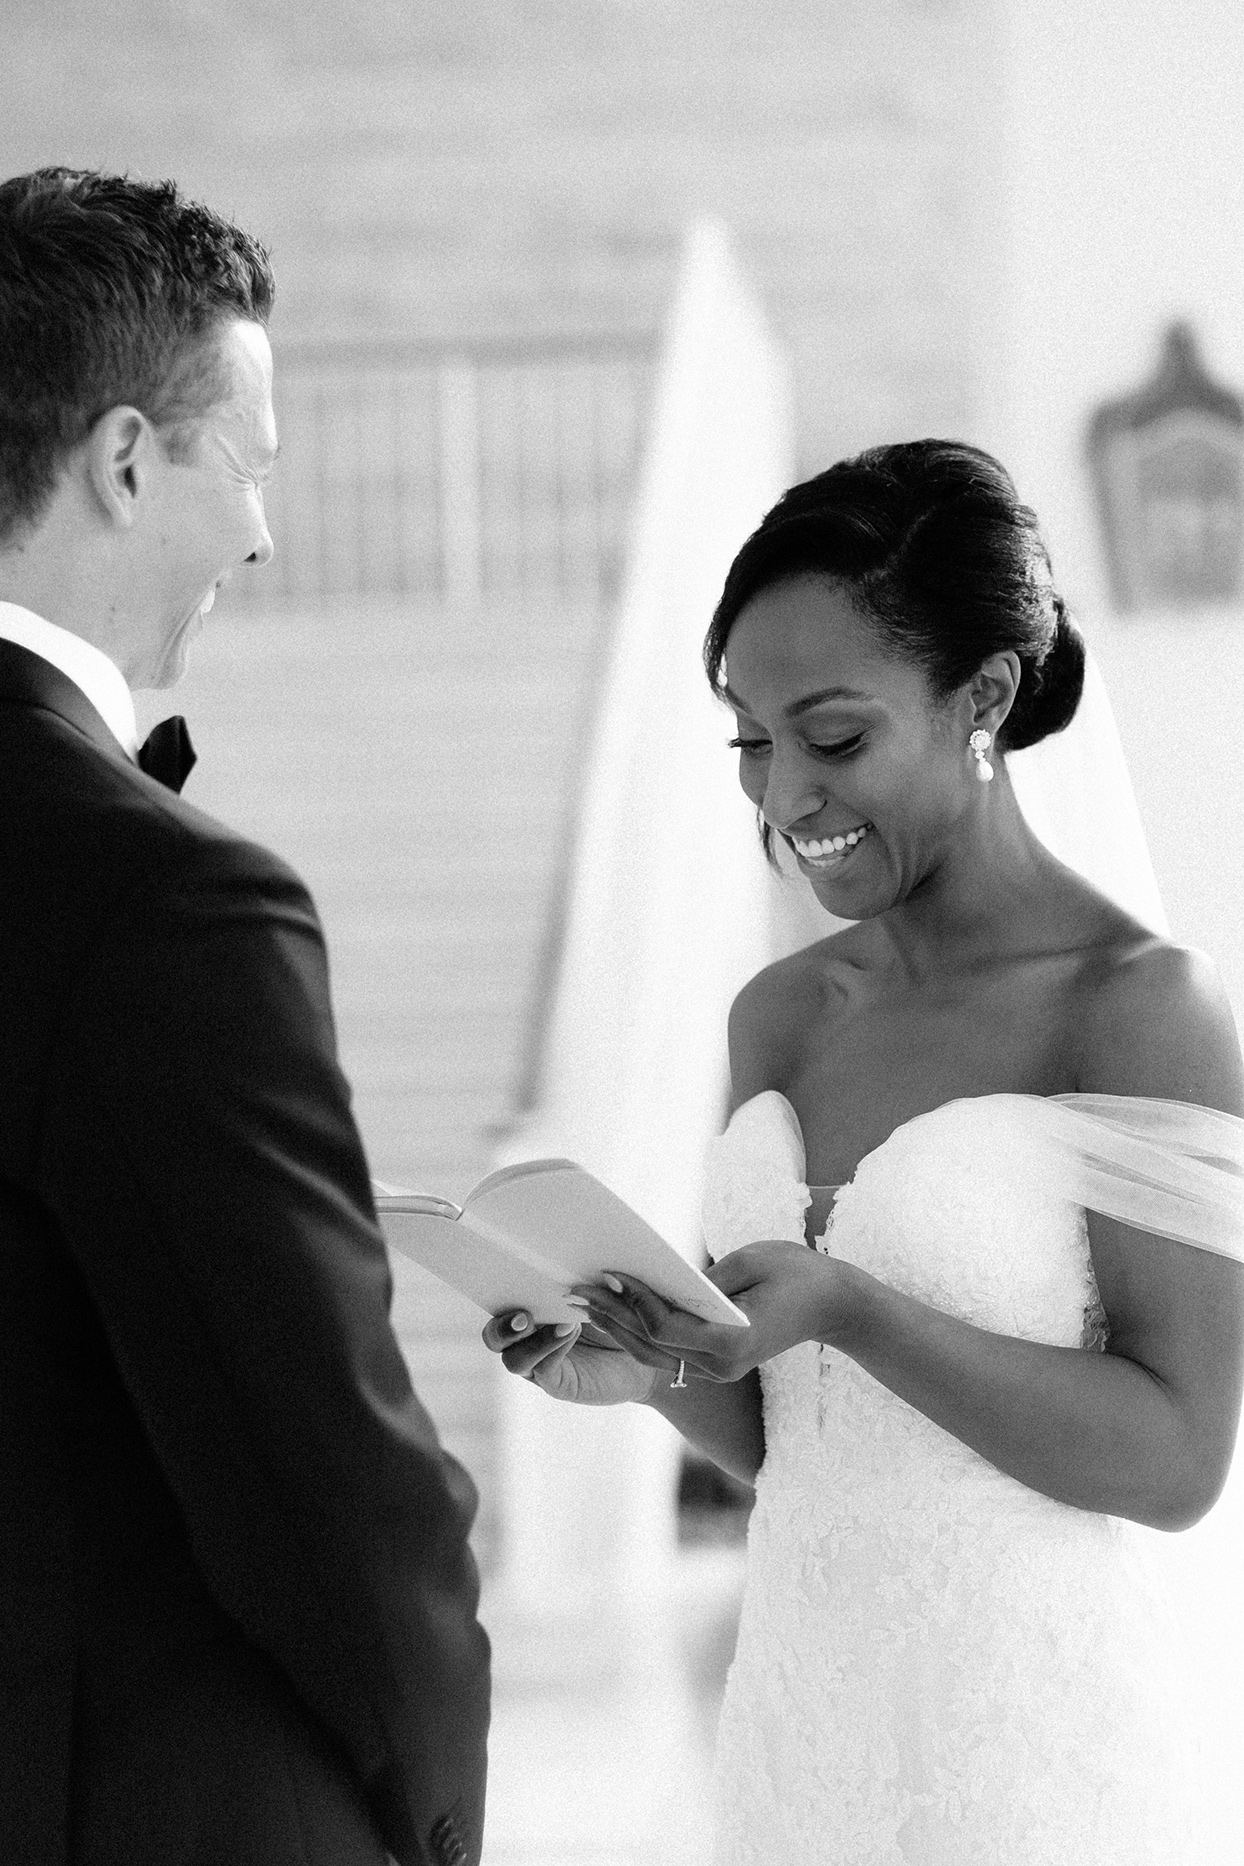 vanessa nathan wedding first look couple sharing vows